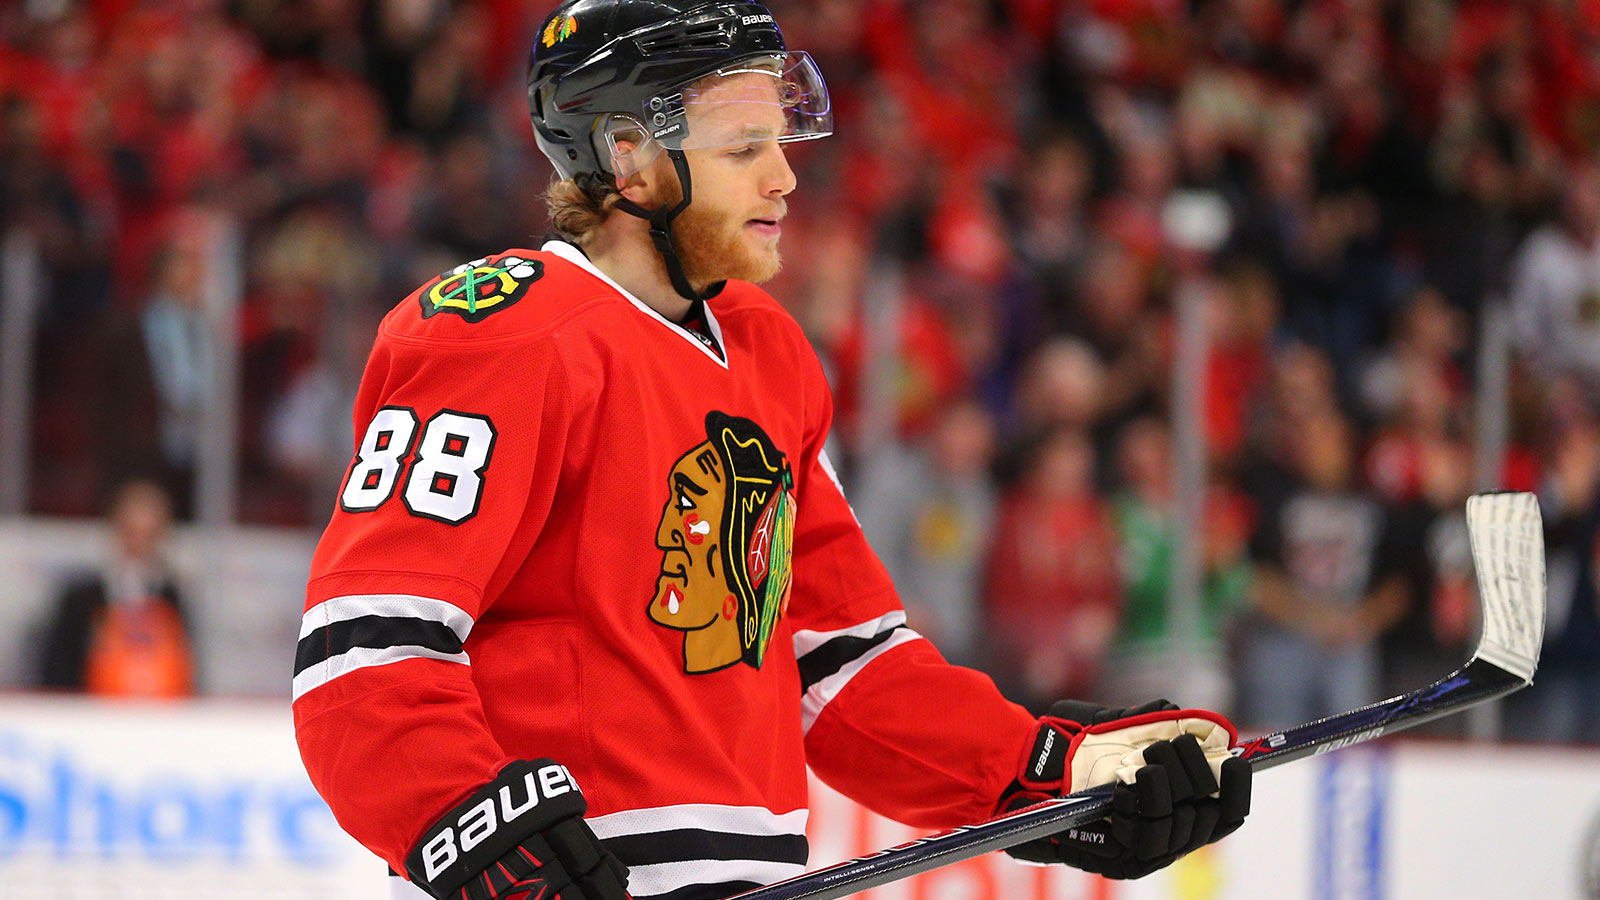 Chicago Blackhawks season preview: Stanley Cup champs set to defend title